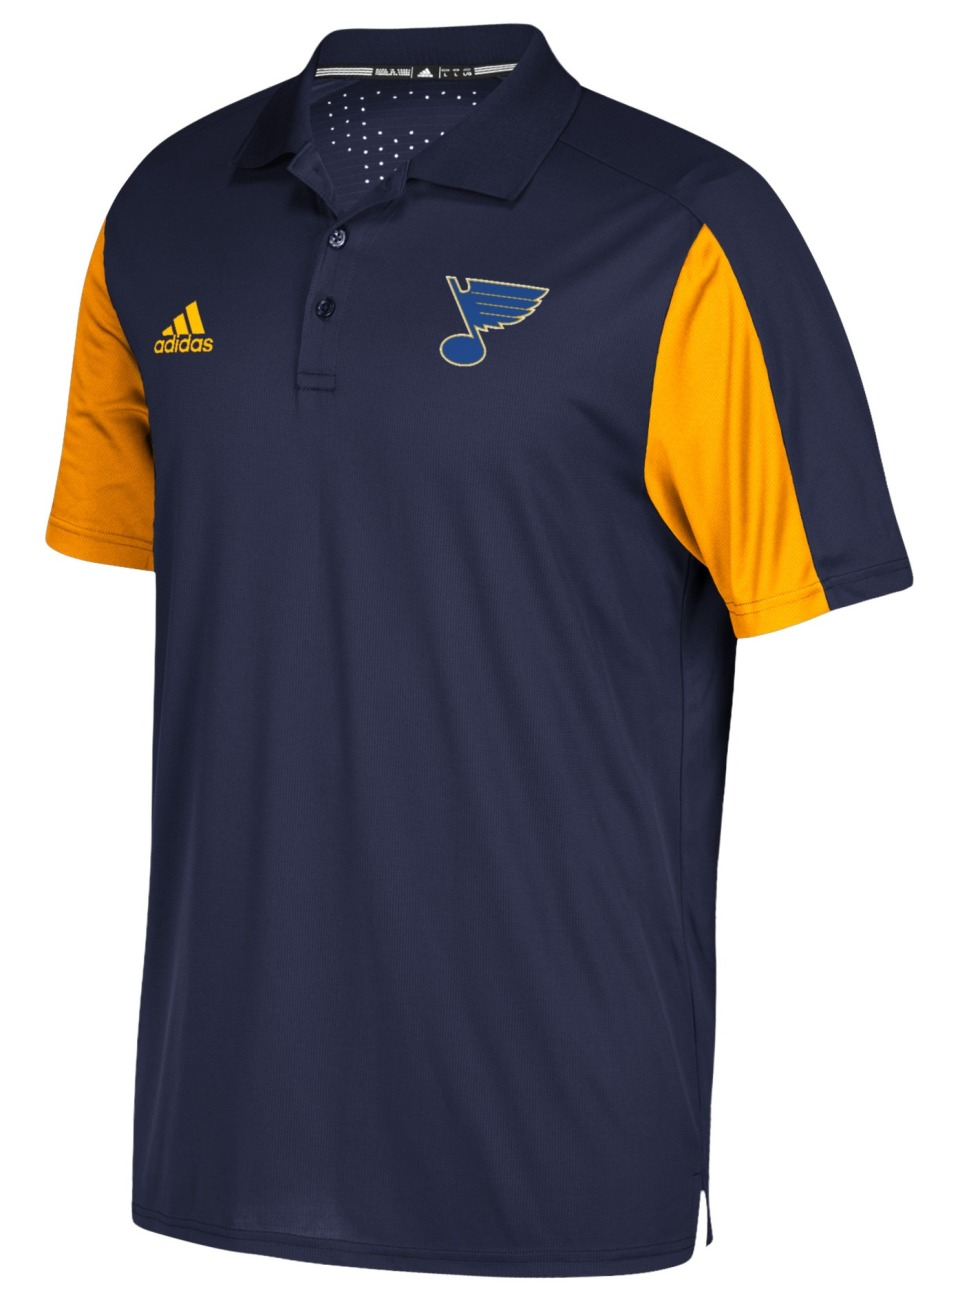 St. Louis Blues Adidas NHL Men's 2017 Authentic Game Day Polo Shirt